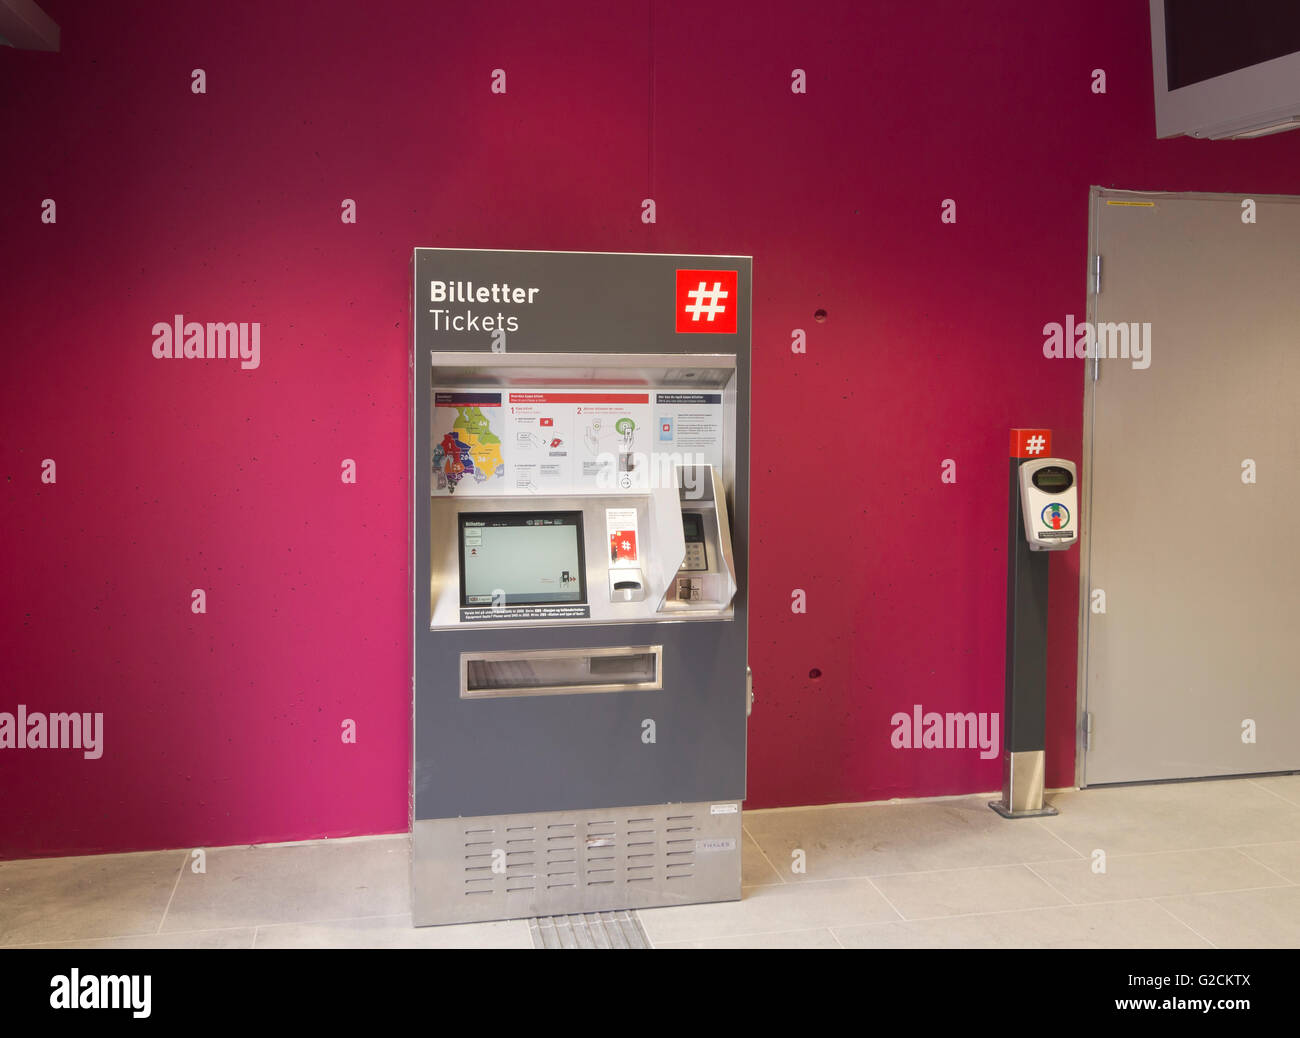 The new Løren metro station in Oslo Norway opened in April 2016 automated ticket machine and validation point - Stock Image